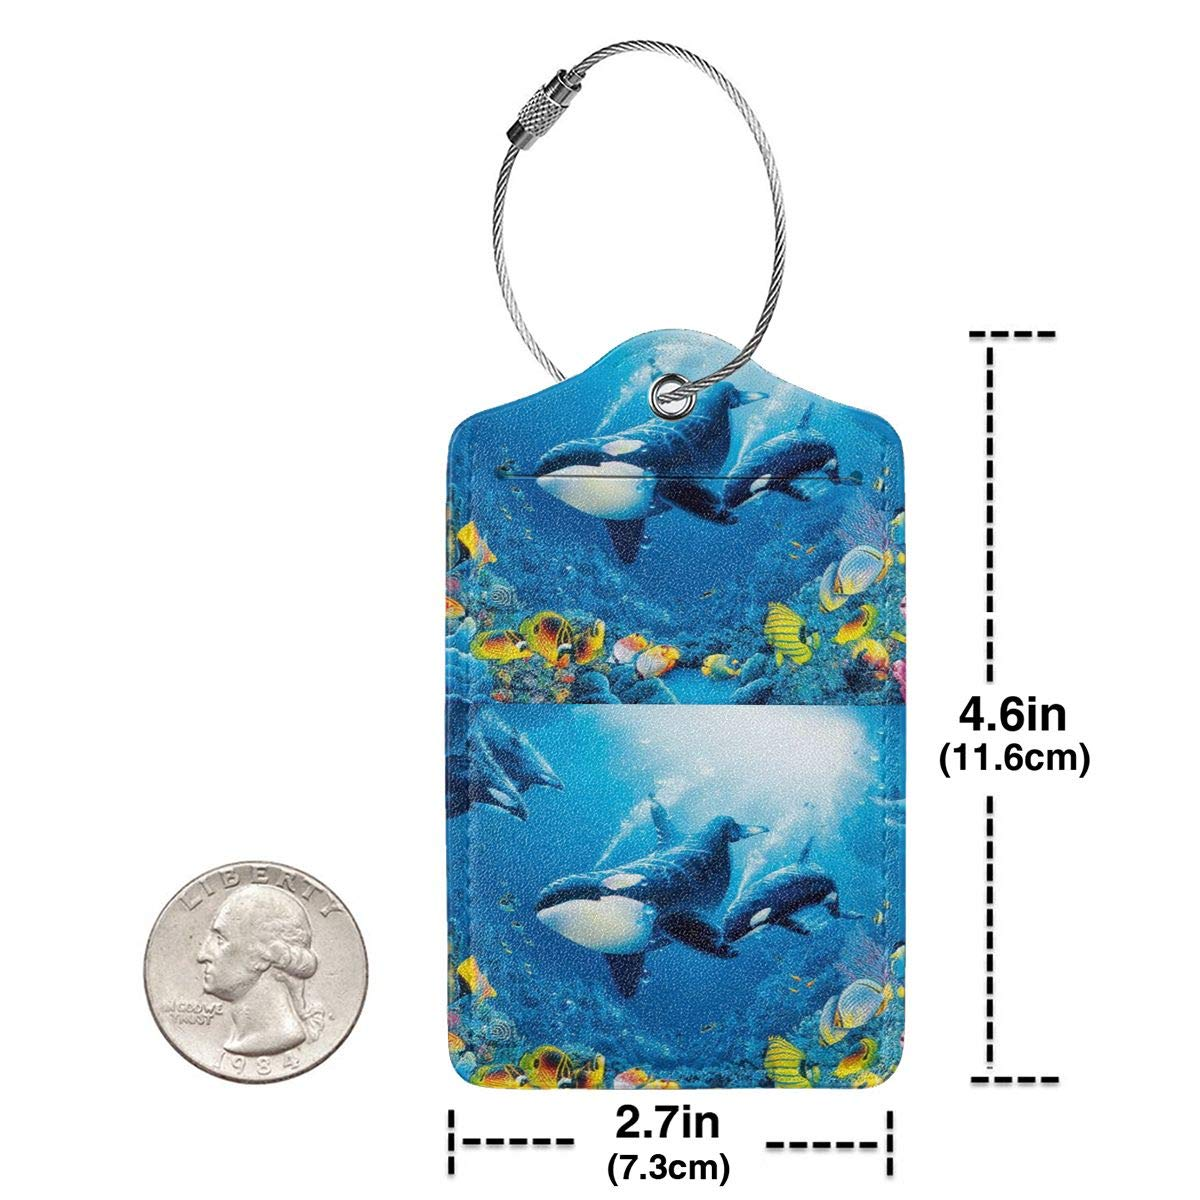 Killer Whales Orcas Ocean Sea Animals Wallpaper Leather Luggage Tags Personalized Privacy Cover With Adjustable Strap